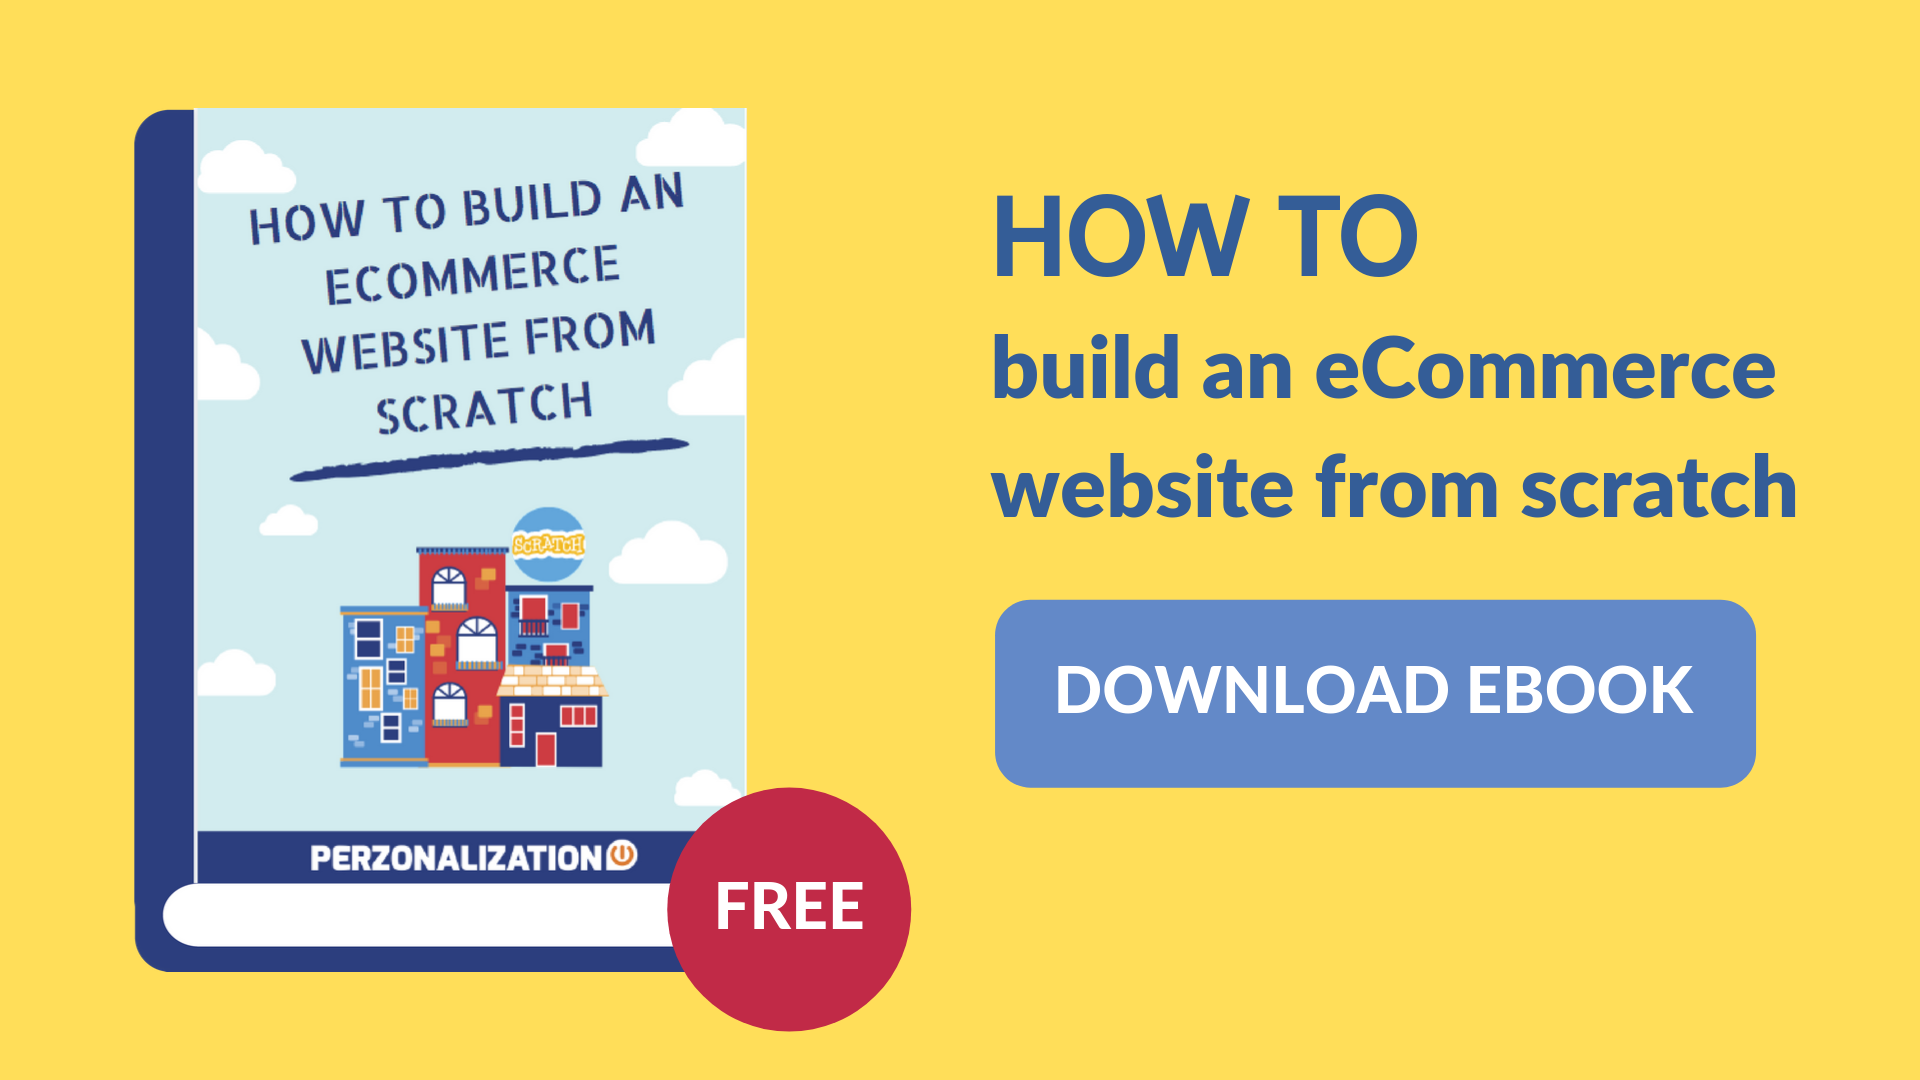 Download free eBook: How to build an eCommerce website from scratch